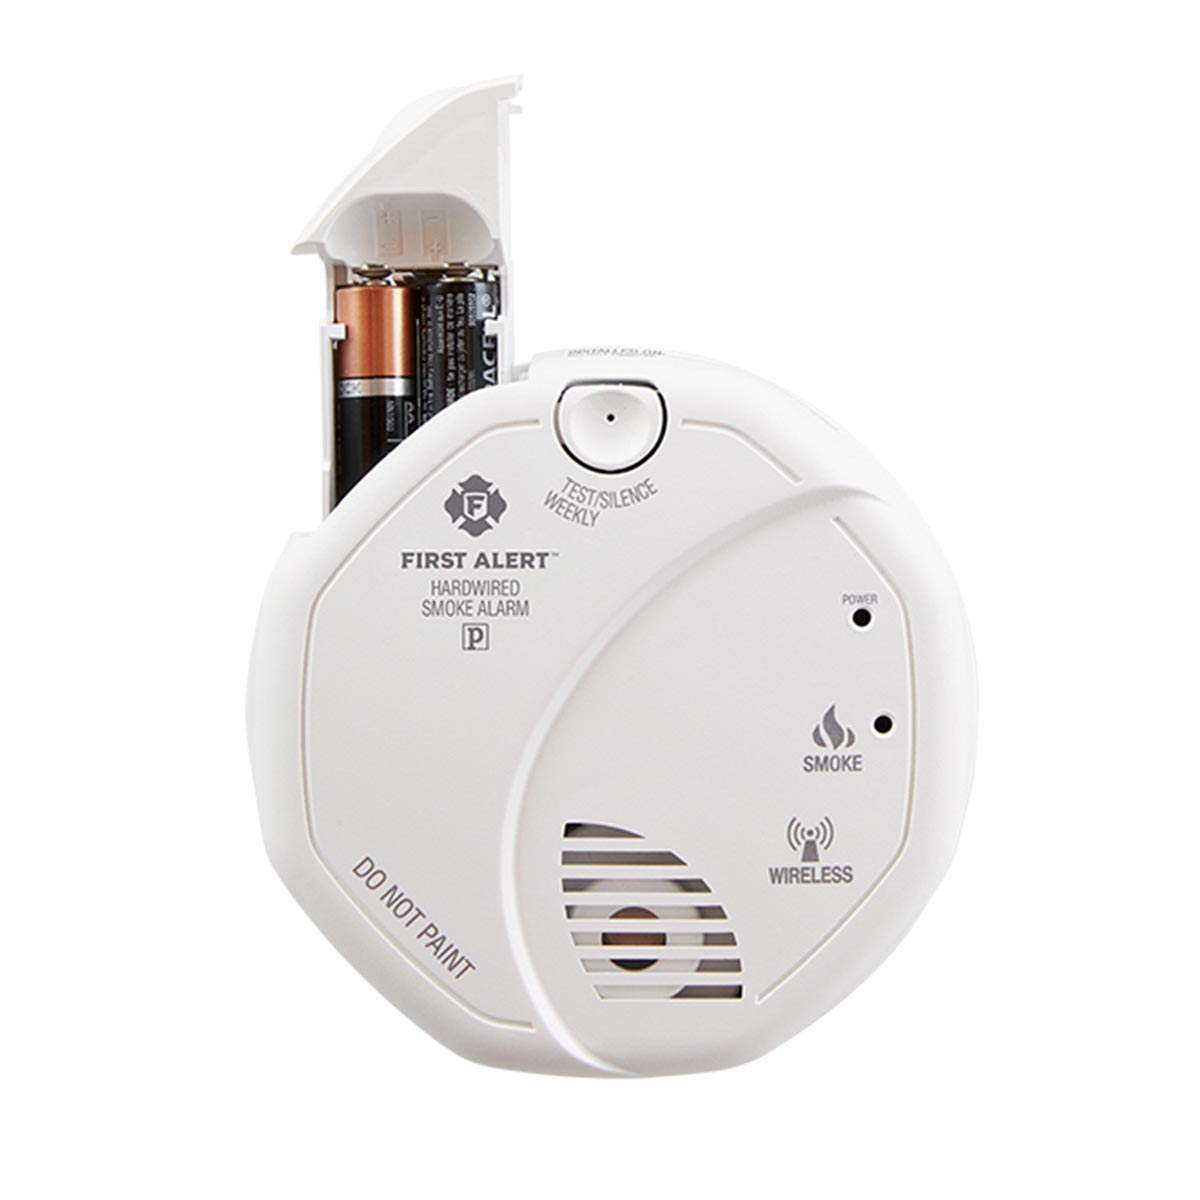 First Alert Hardwired Smoke Detector Wiring Diagram 51 Hard Wired Detectors Onelink Wireless Alarm Sa521cn 3st 2 Interconnect Simplex Diagrams